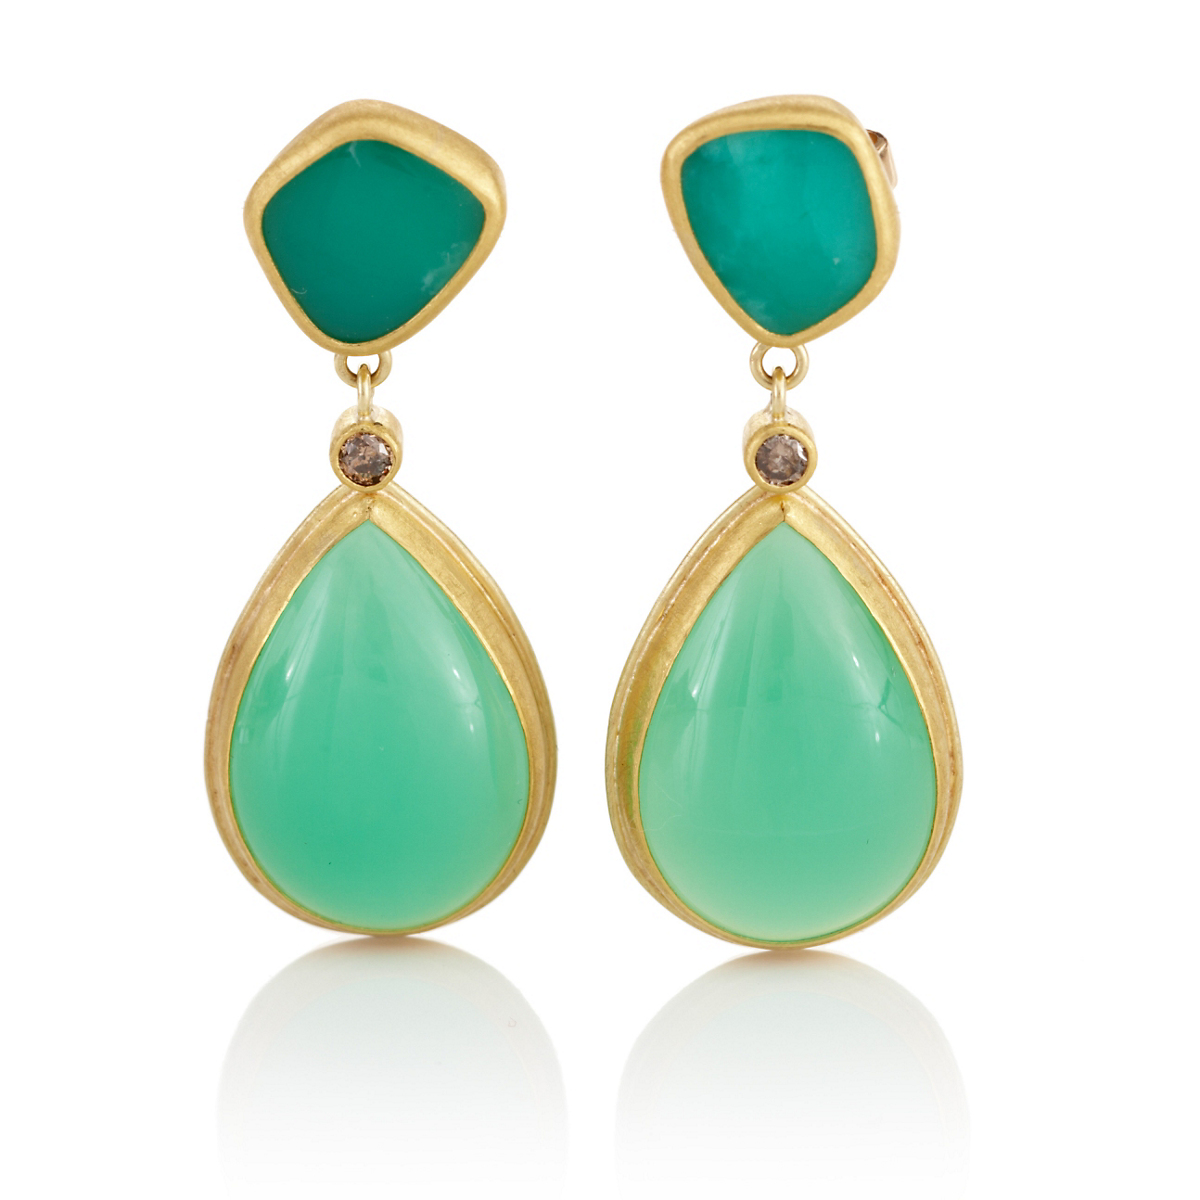 Petra Class Chrysoprase & Brown Diamond Drop Earrings